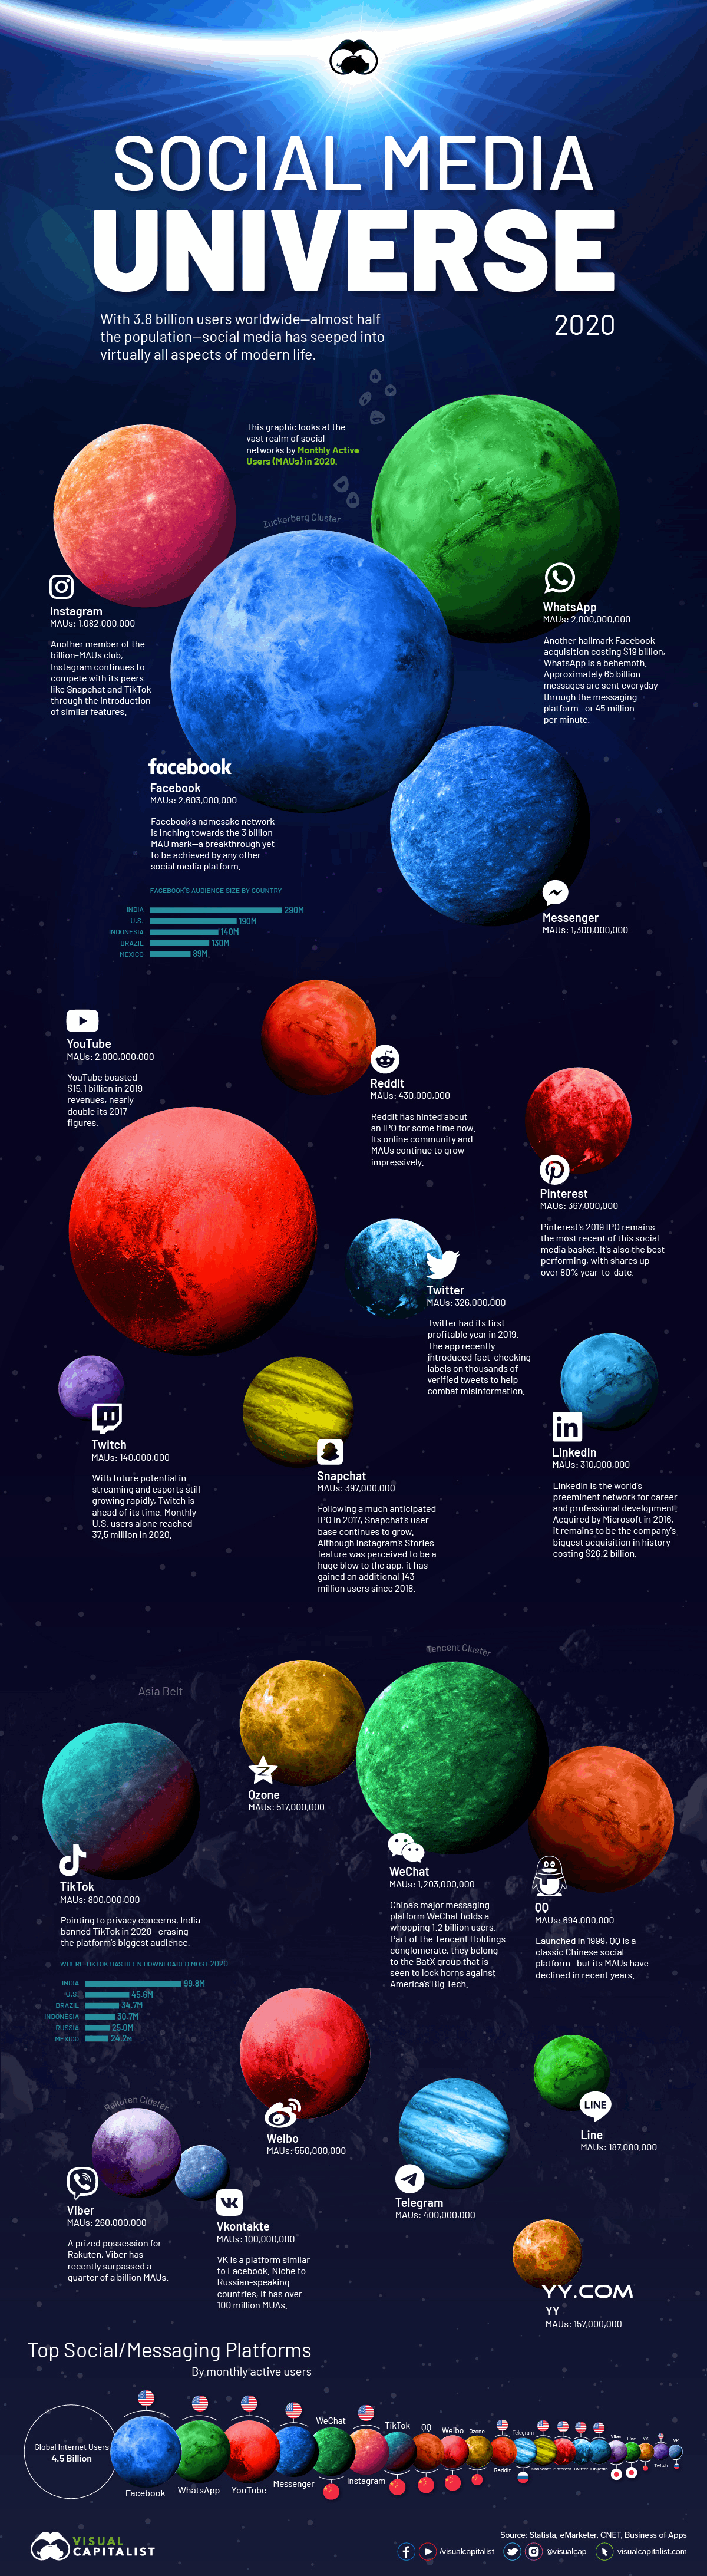 Social Universe 2020 infographic